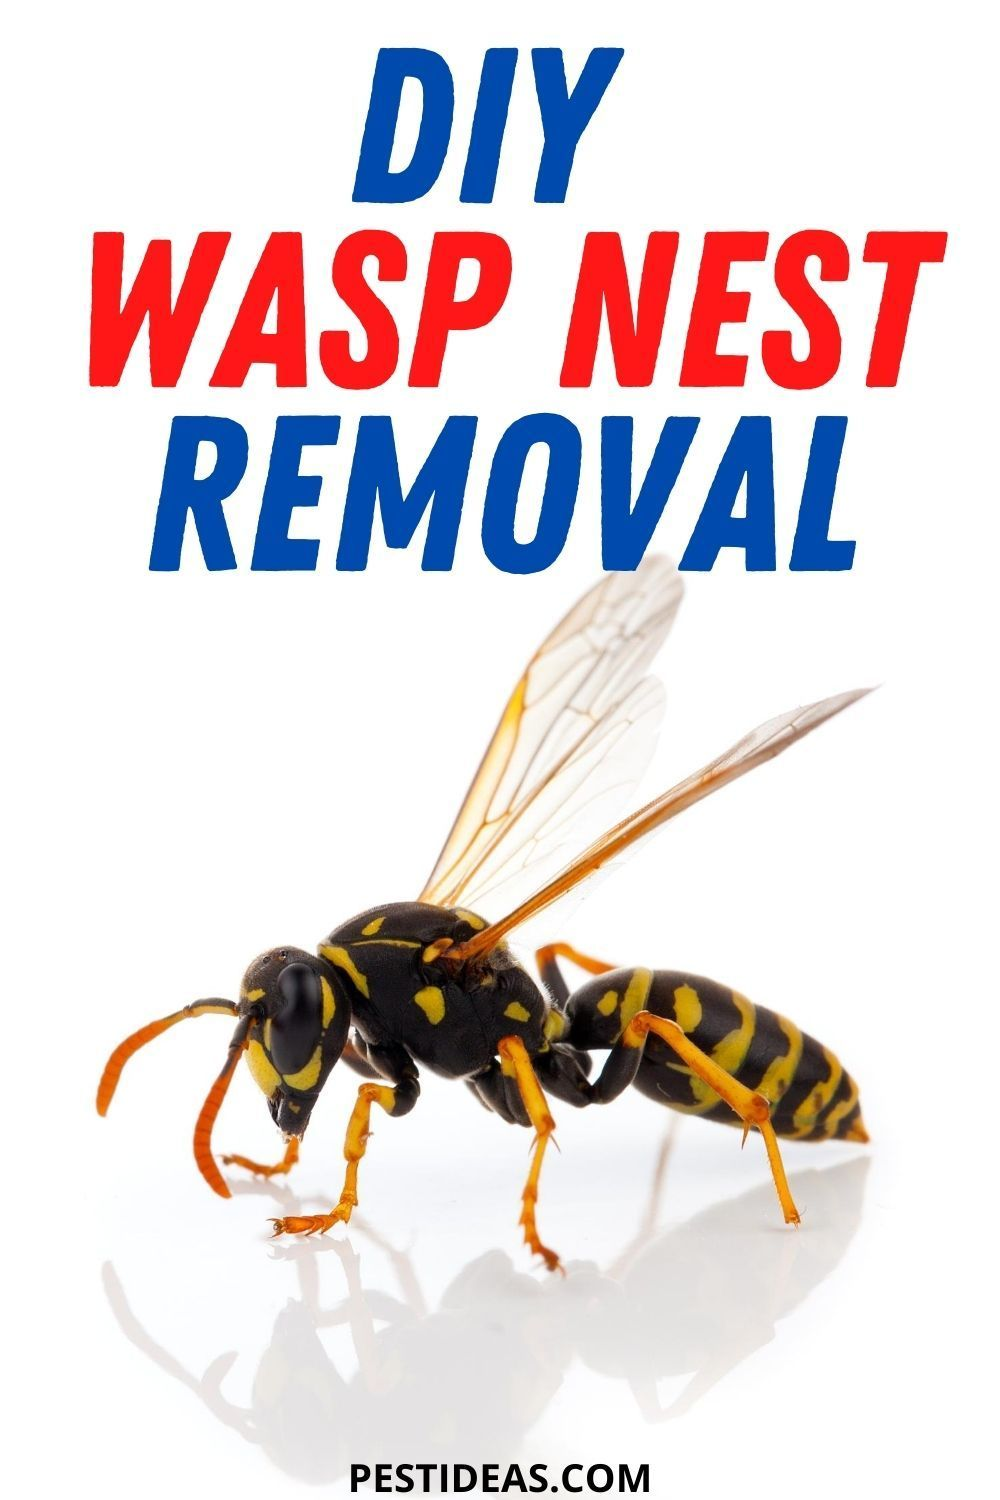 Diy wasp nest removal in 2020 wasp nest removal wasp